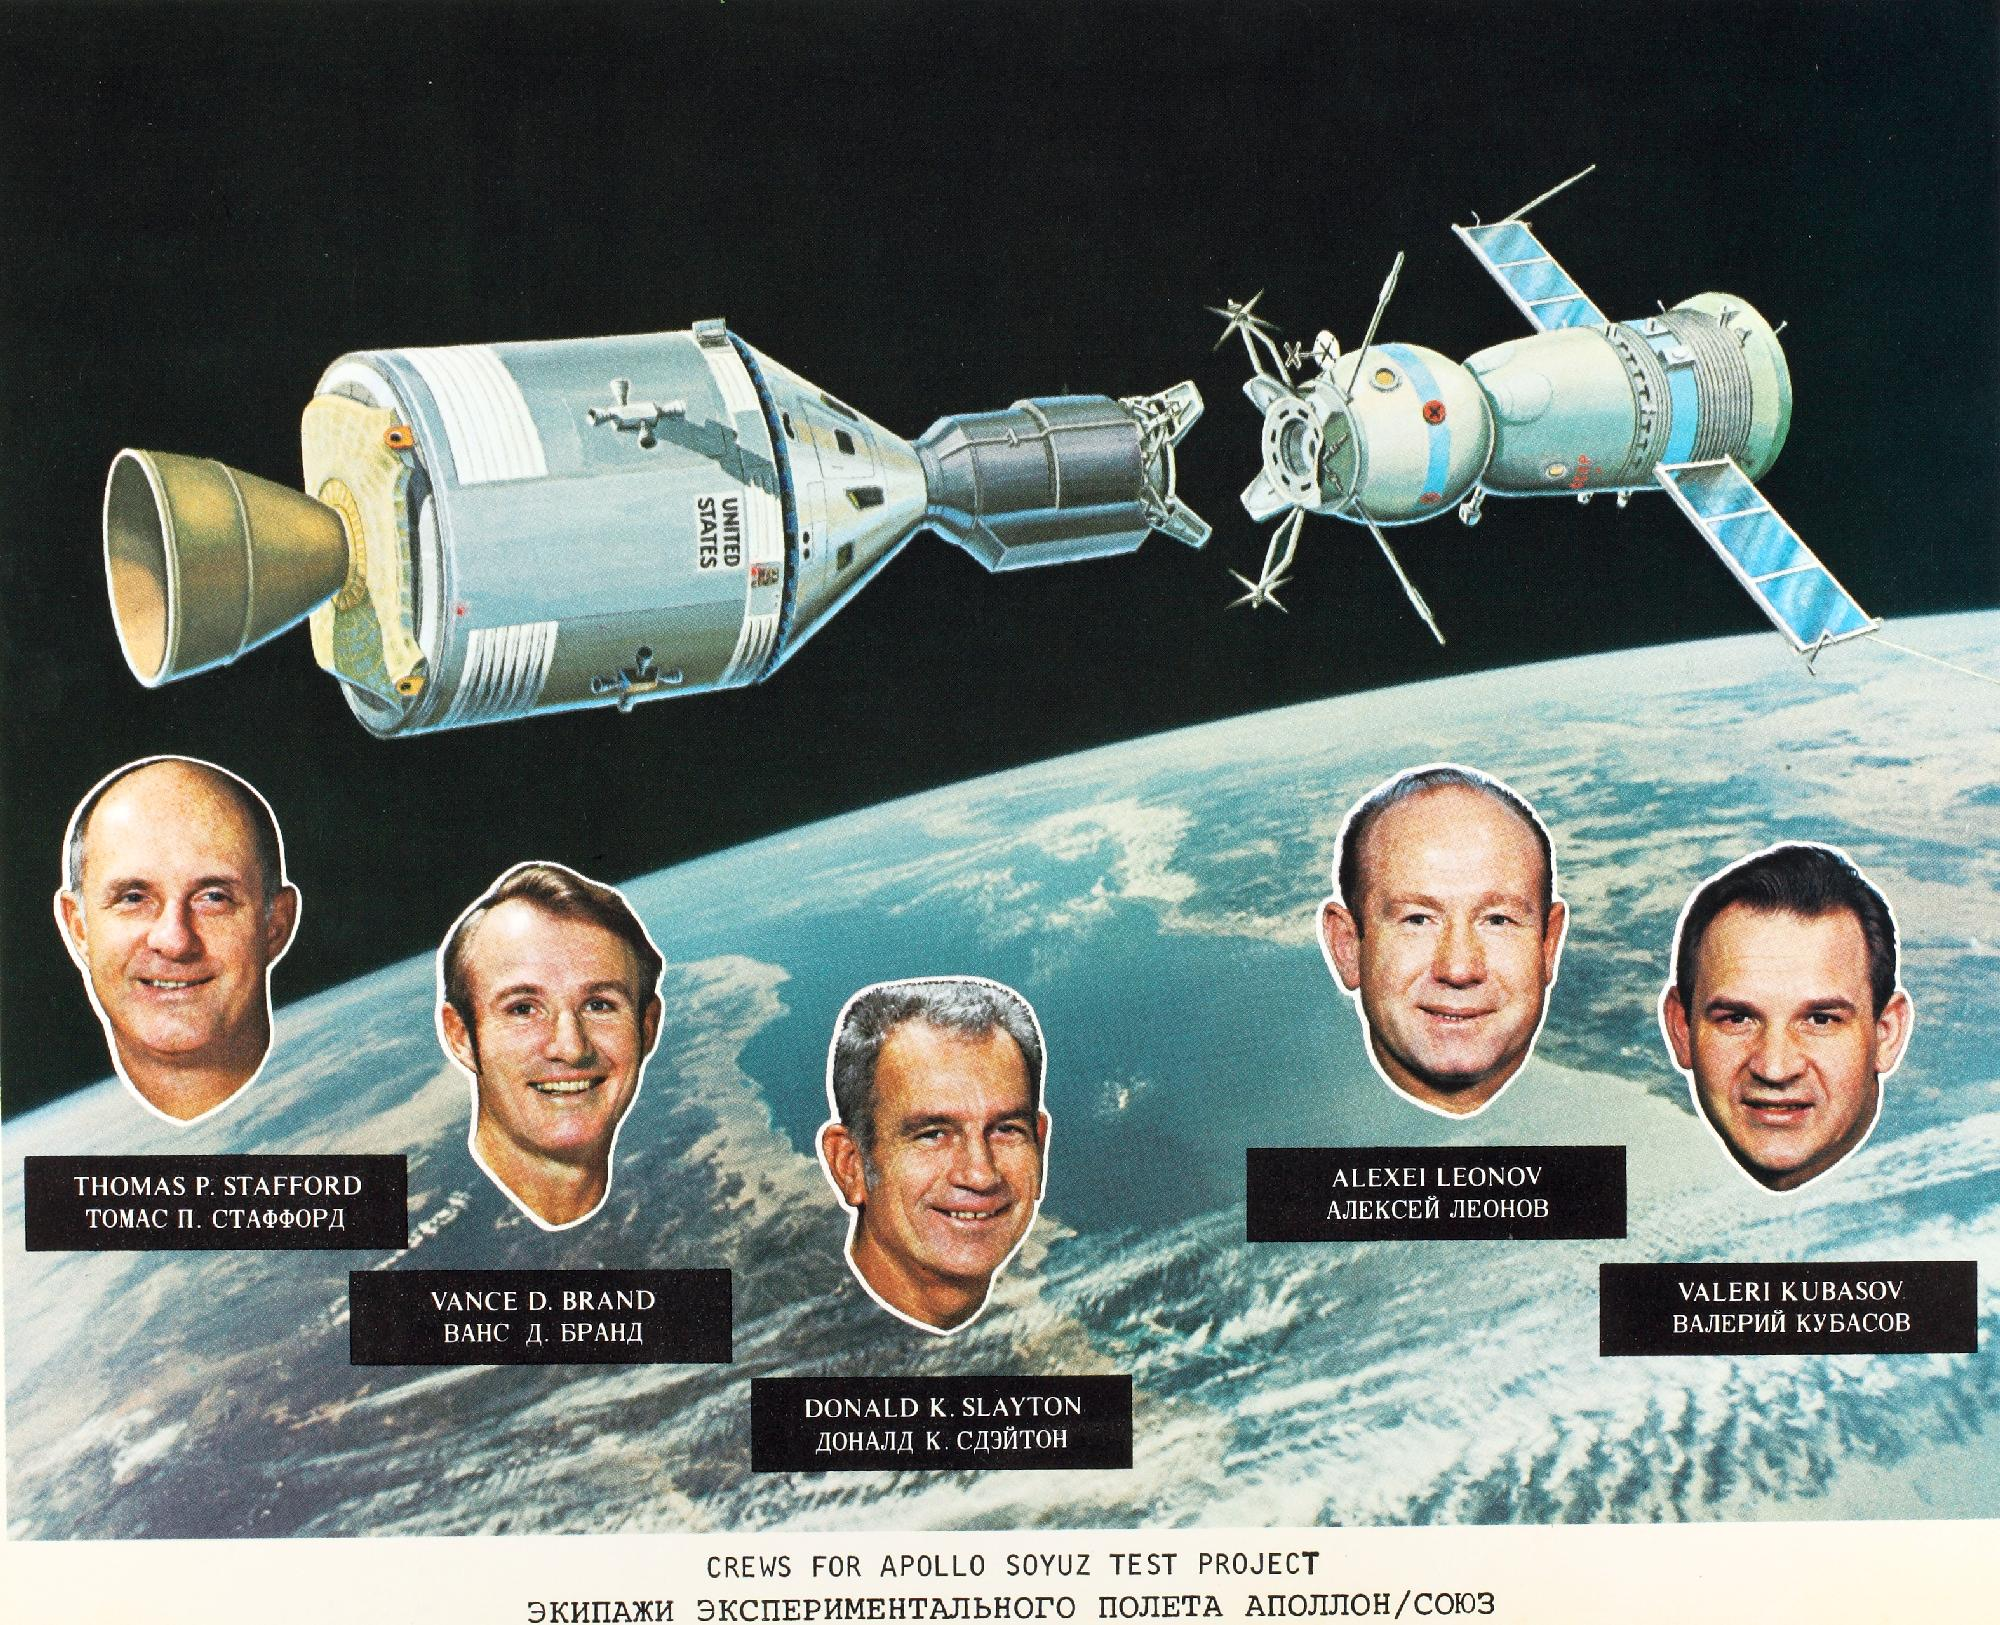 - In 1975, the first-ever meeting between astronauts and cosmonauts took place during the Apollo-Soyuz Test Project. Soviets and Americans shook hands through an open hatch and remained docked together for 44 hours. The meeting cooled Cold War tensions and ushered in a new era of technical and scientific collaboration.That was the last successful meeting in history.